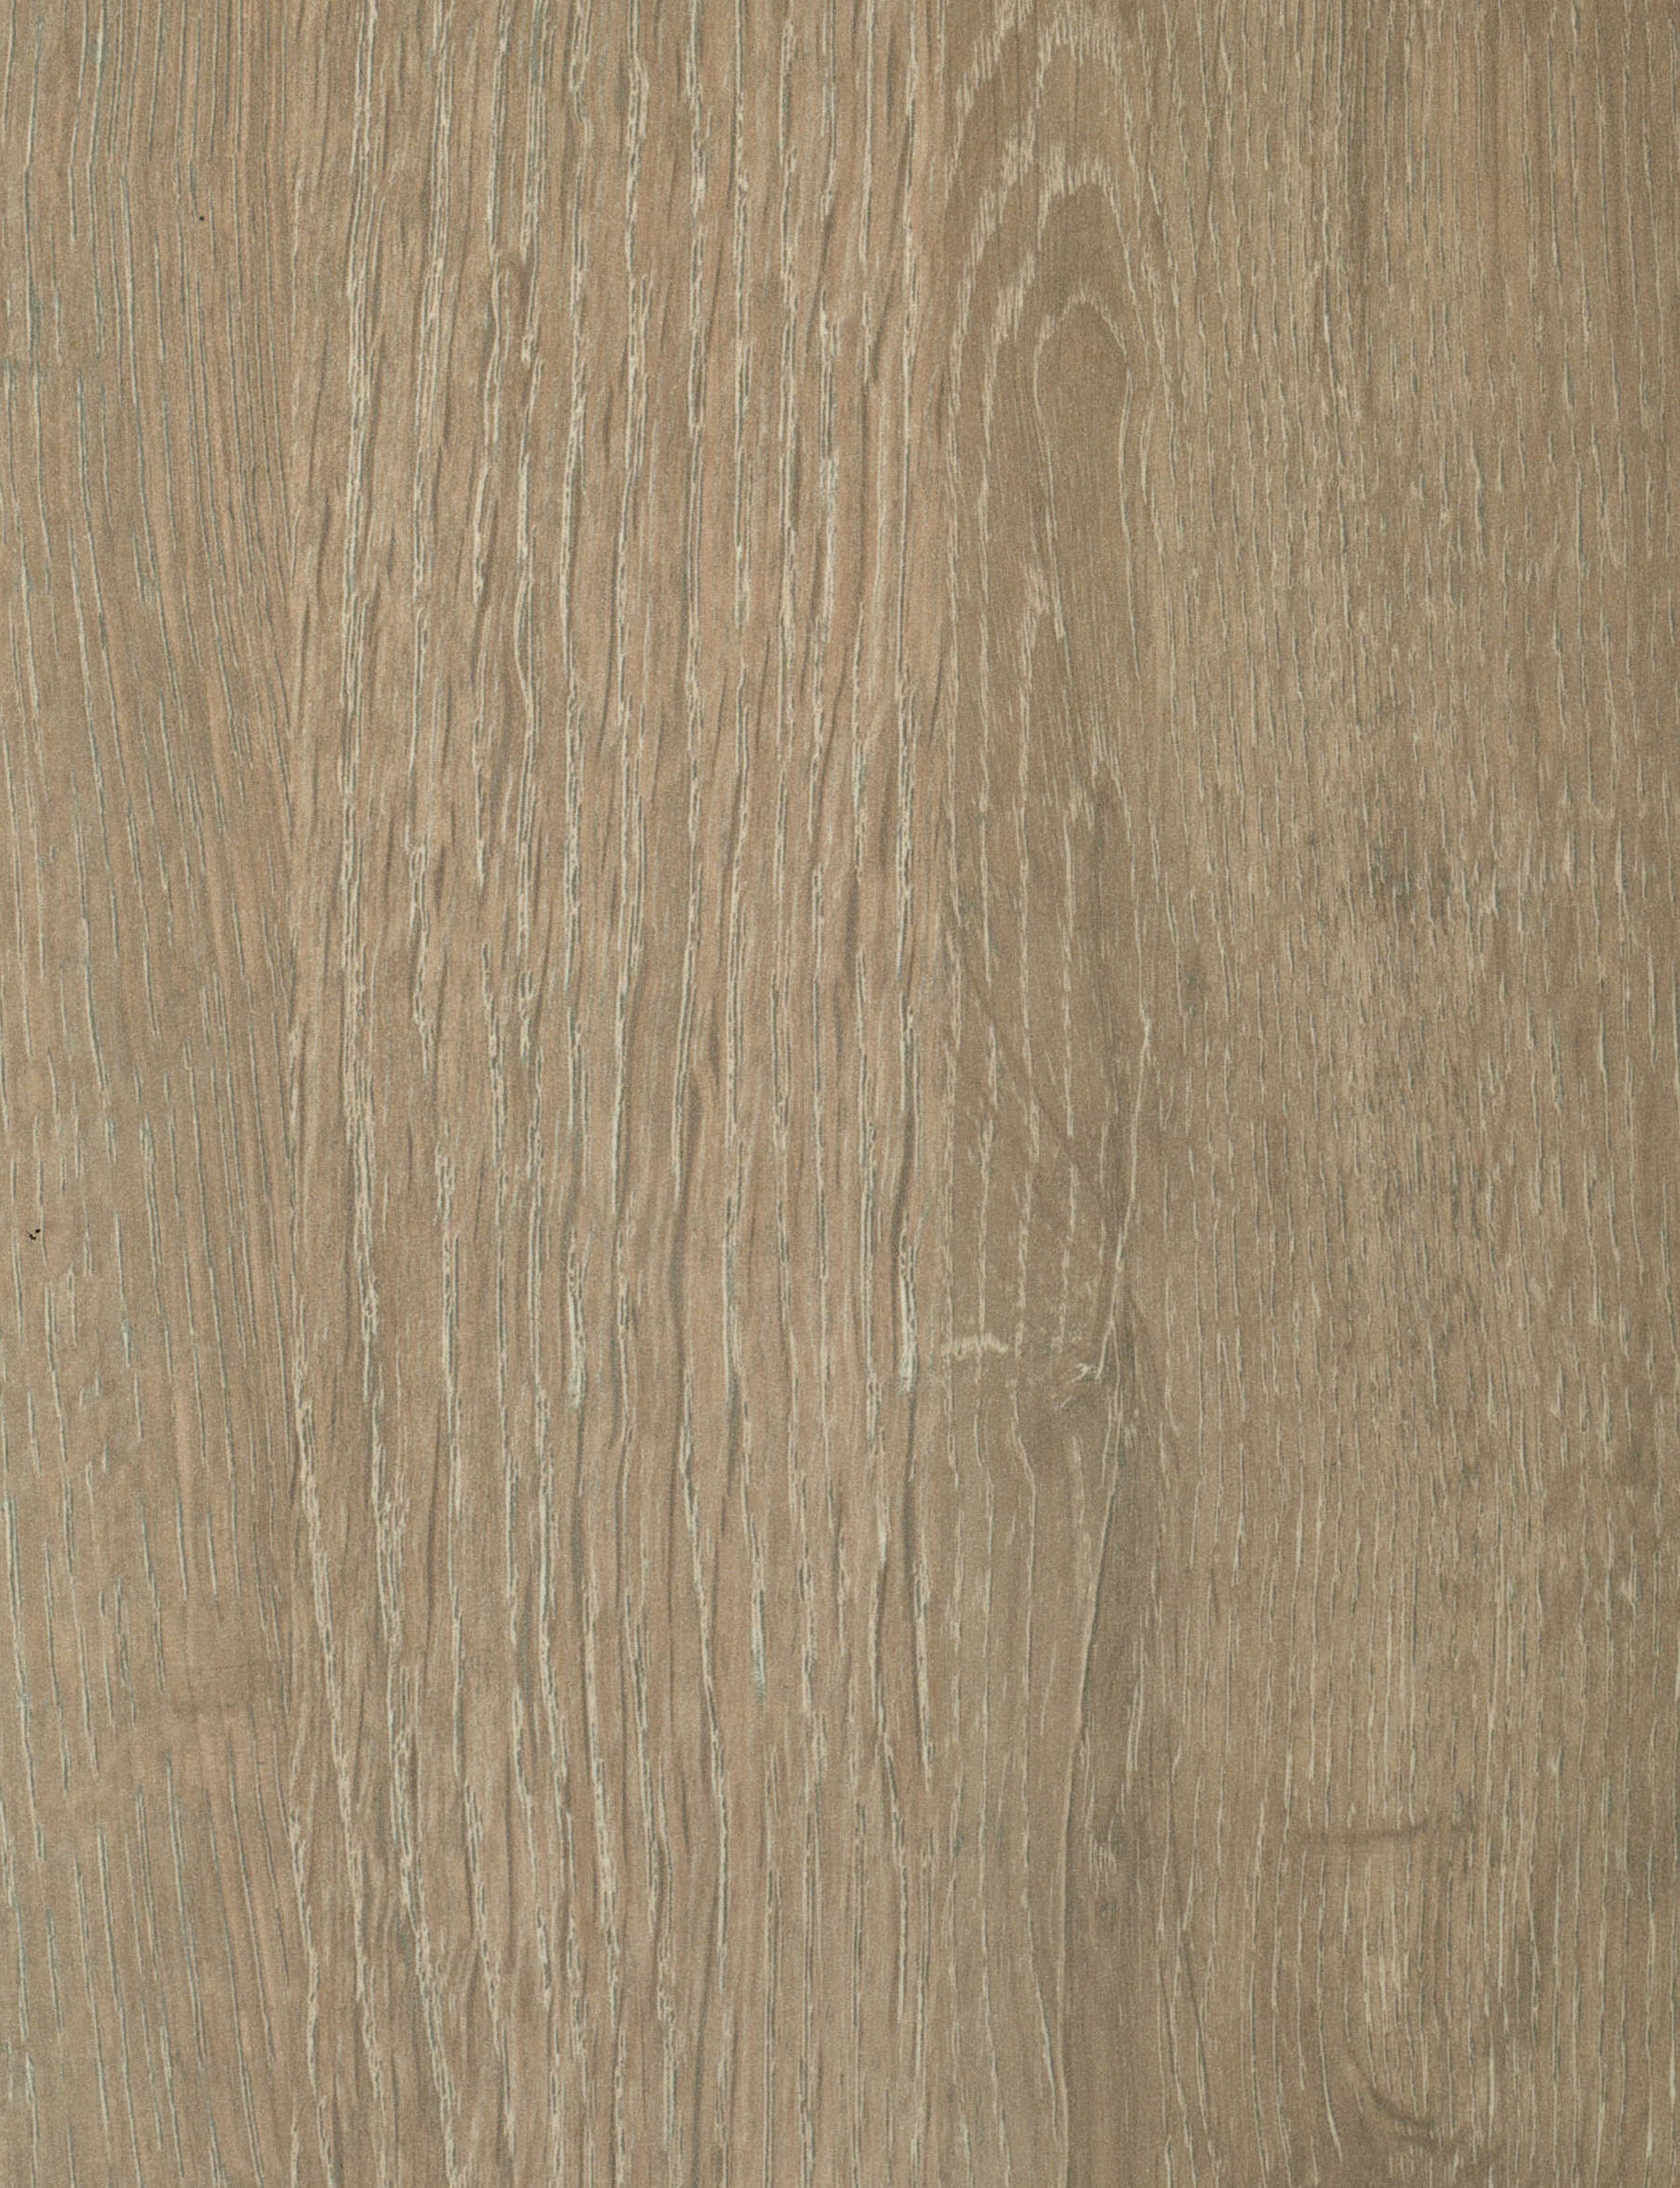 Lamitech Countryside Oak Bonded Board MDF (3000mm x 1200mm x 14mm)